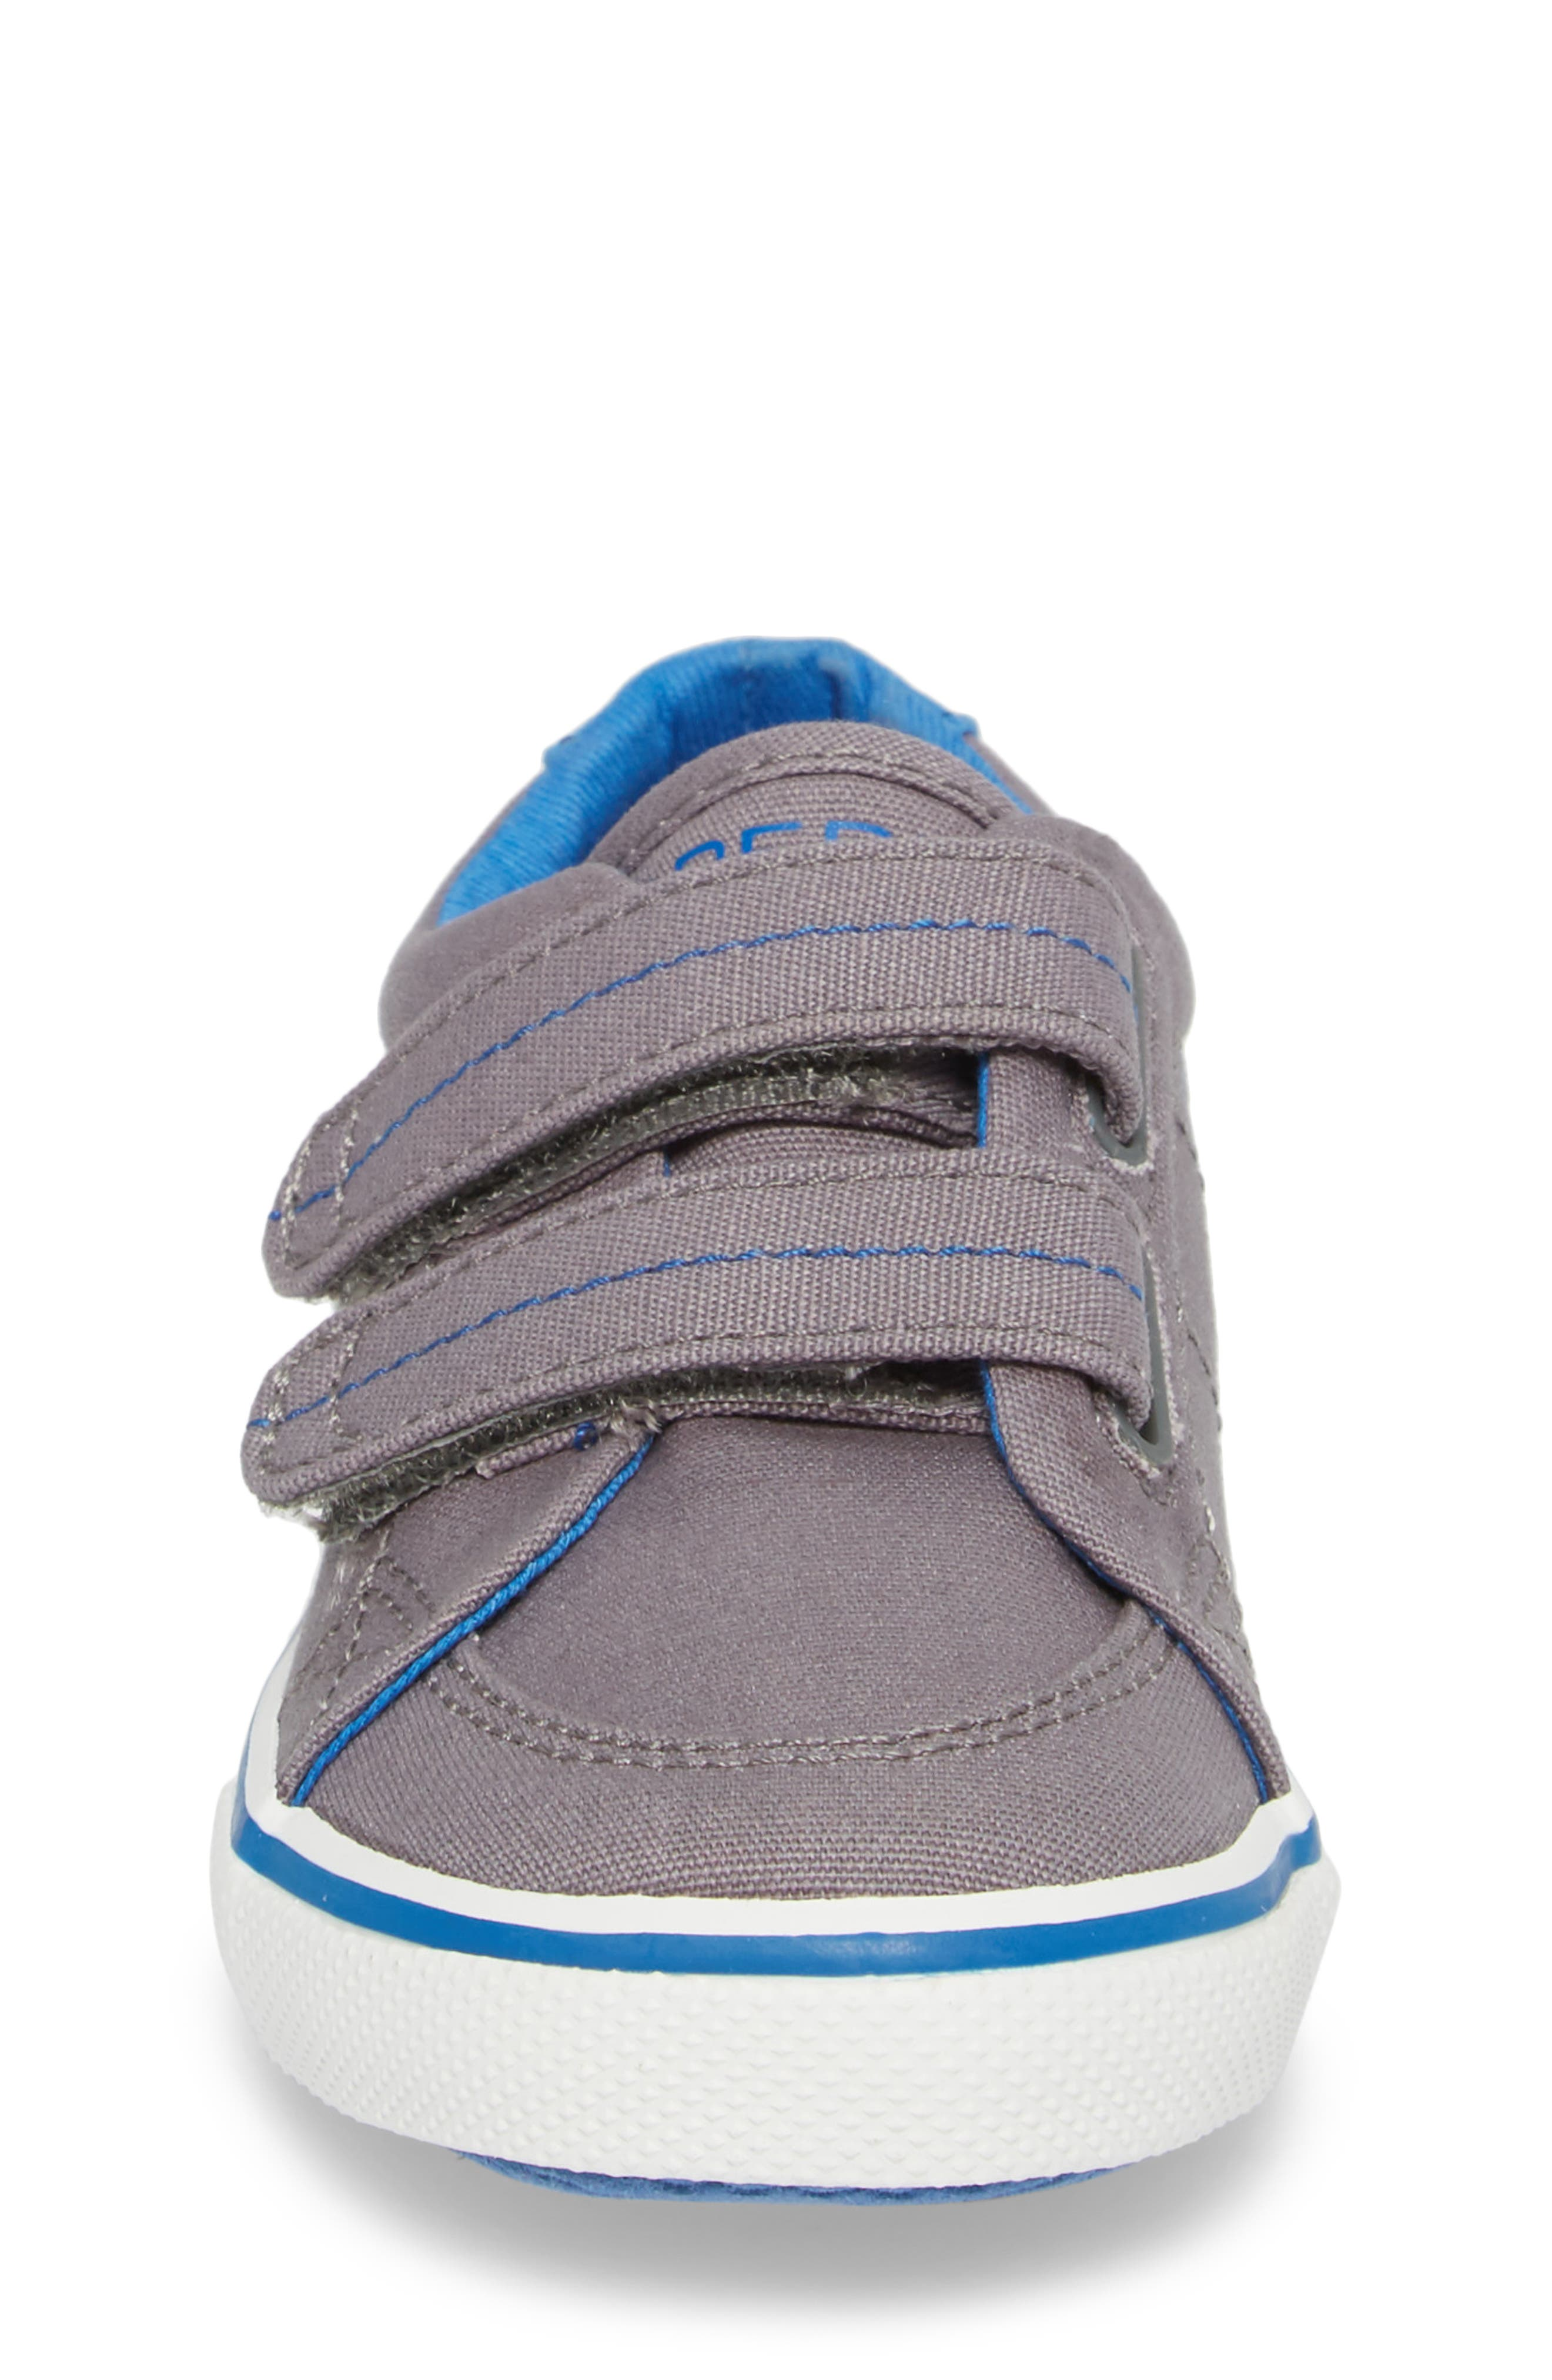 Sperry Top-Sider<sup>®</sup> Kids 'Halyard' Sneaker,                             Alternate thumbnail 16, color,